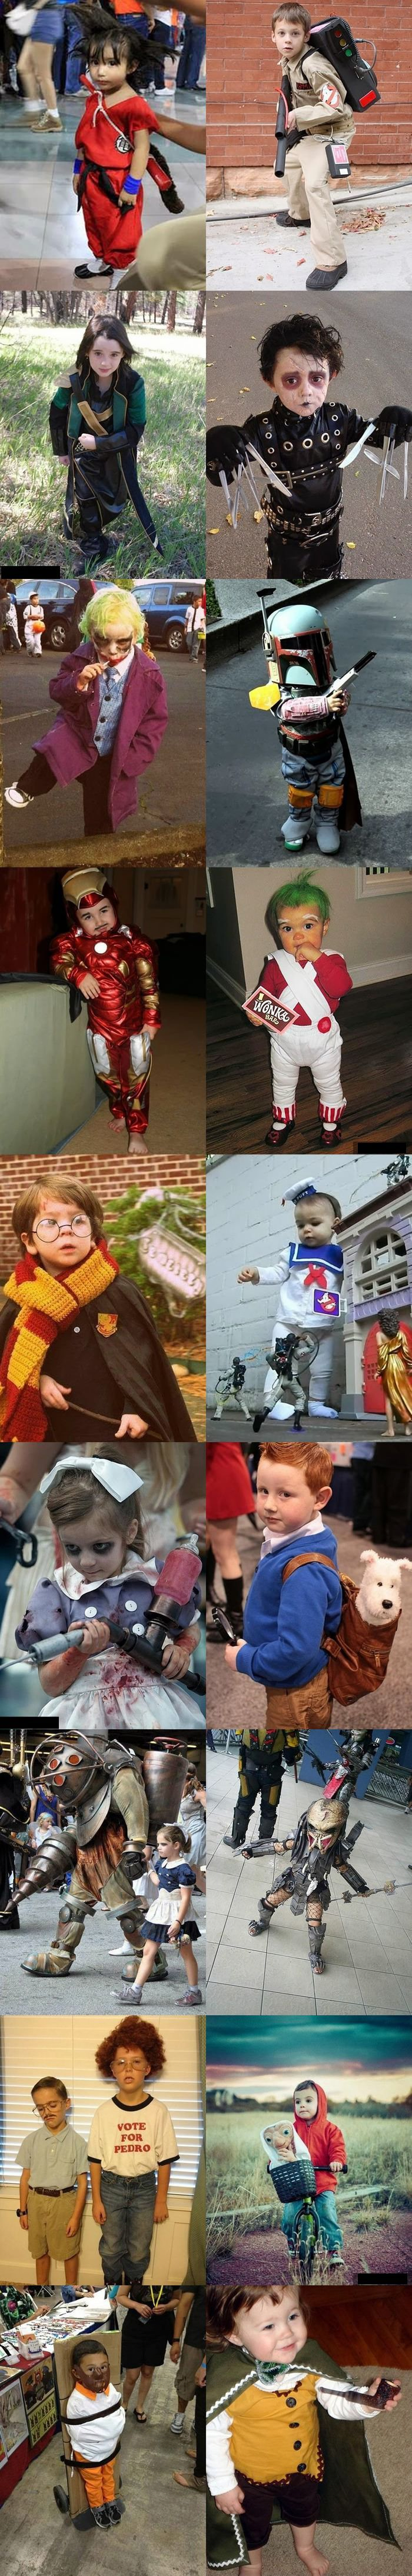 Parenting done right.  Awesome kid's costumes #ParentingDoneRight